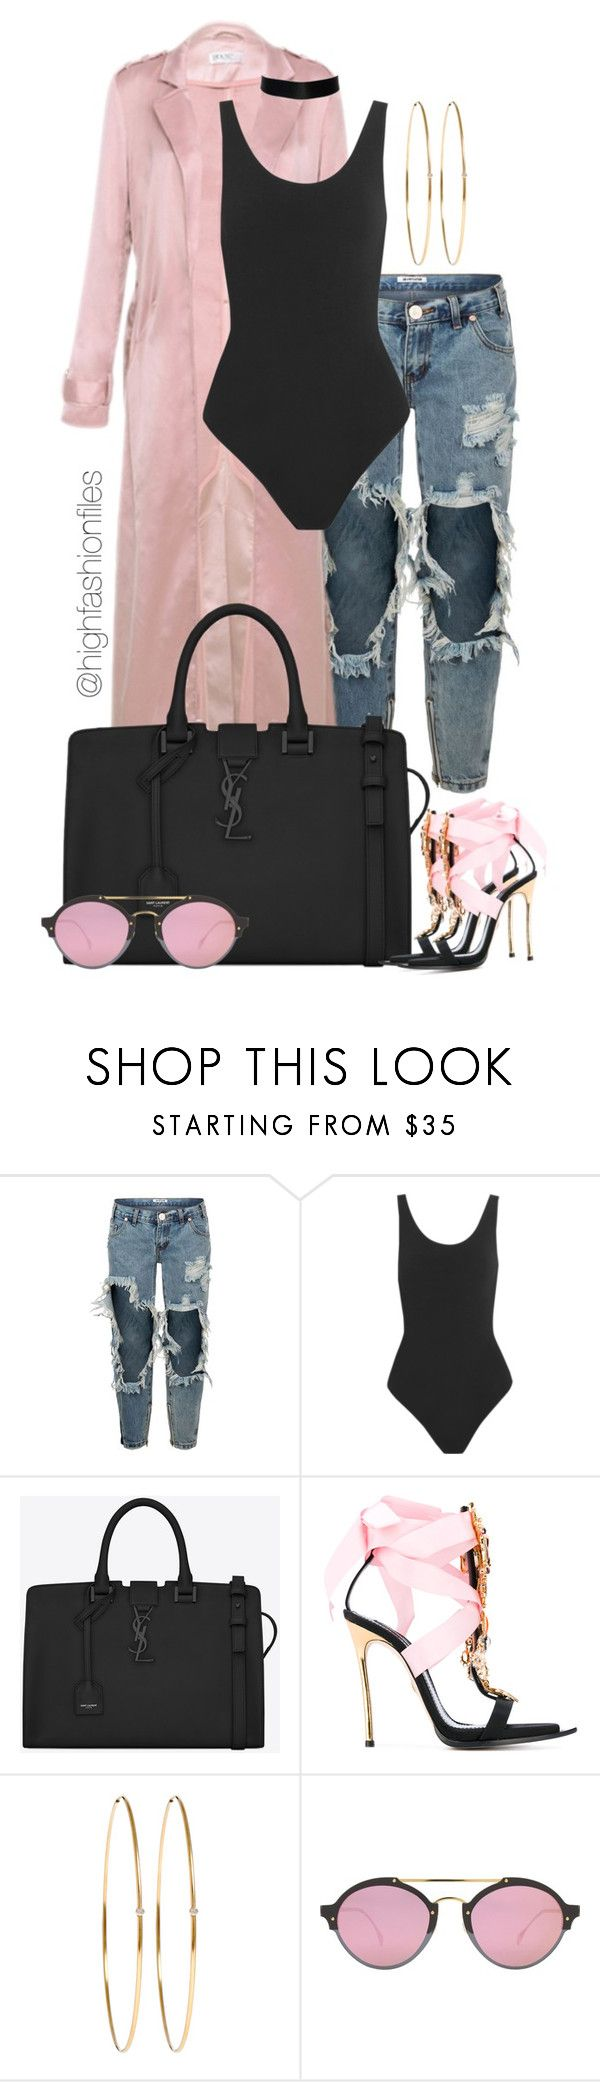 """""""Untitled #2750"""" by highfashionfiles ❤ liked on Polyvore featuring OneTeaspoon, Yummie by Heather Thomson, Yves Saint Laurent, Dsquared2, Jennifer Meyer Jewelry and Illesteva"""